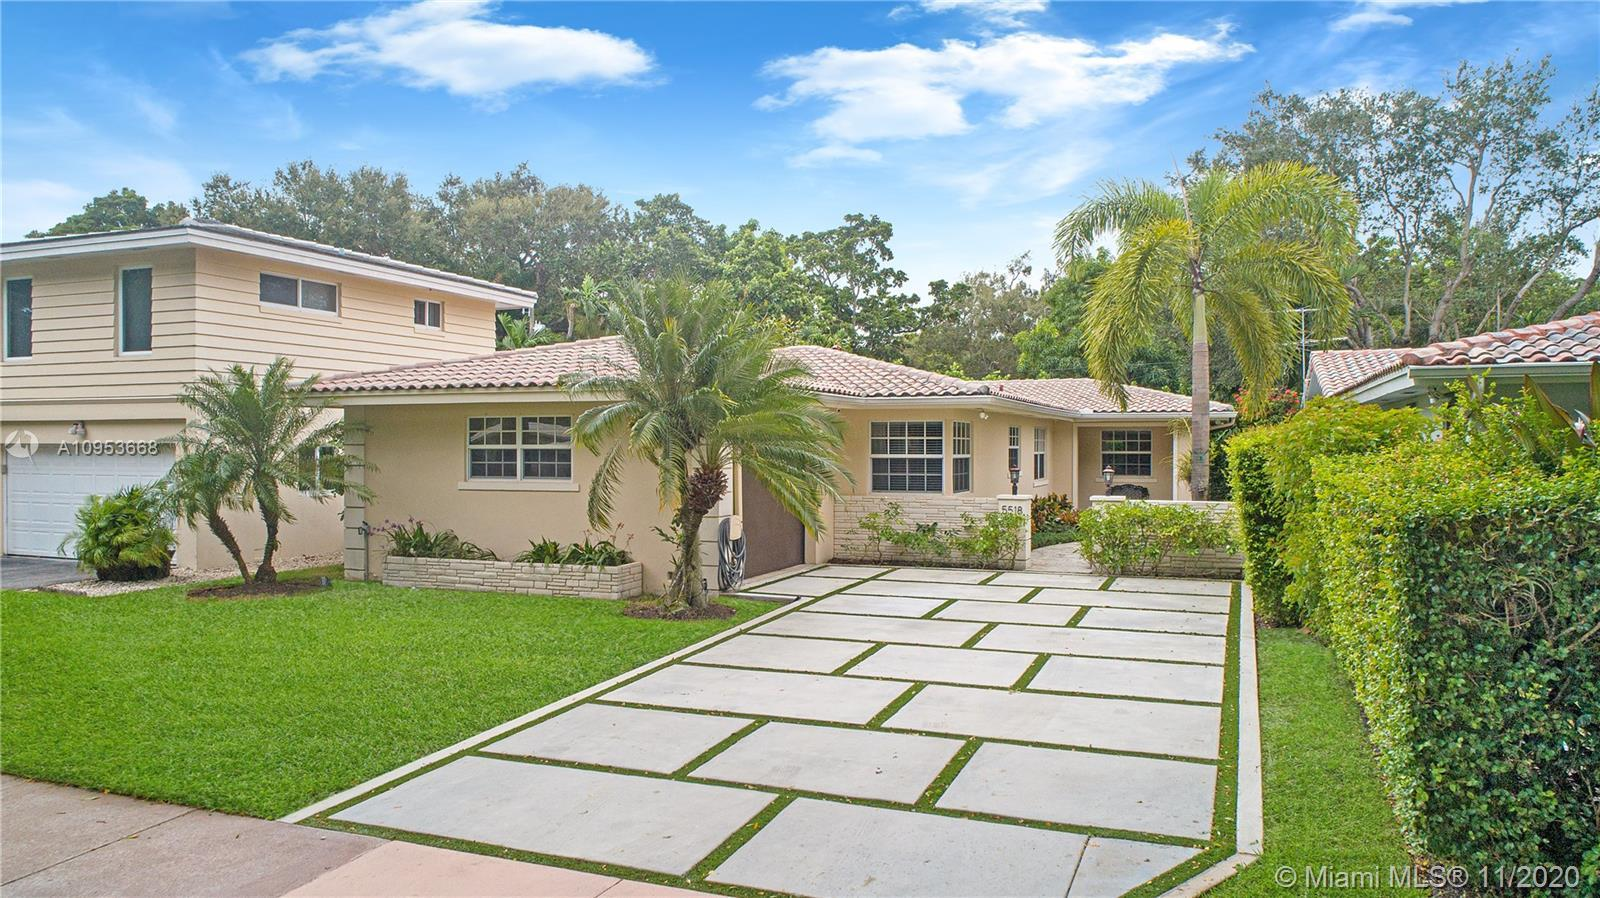 Don't miss this ready to move in 3BR/2BA charming Coral Gables home. Perfect for a family looking fo